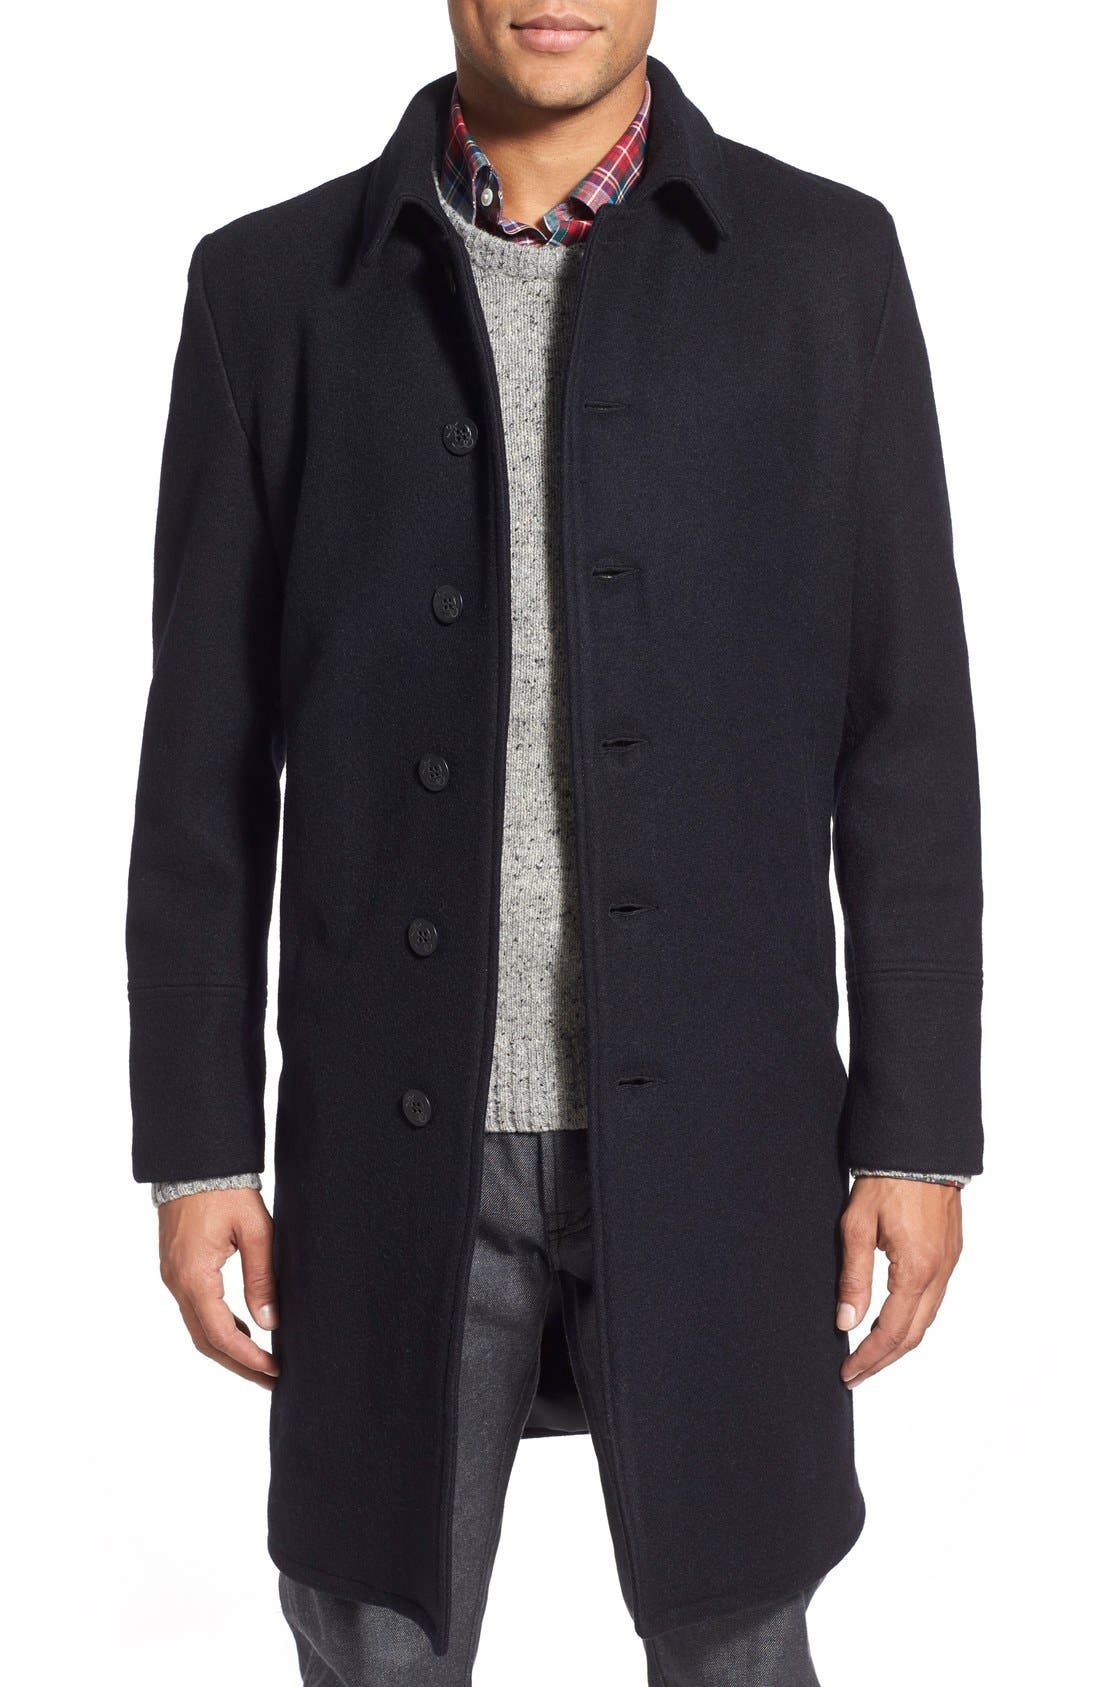 Alternate Image 1 Selected - Schott NYC Wool Blend Officer's Coat